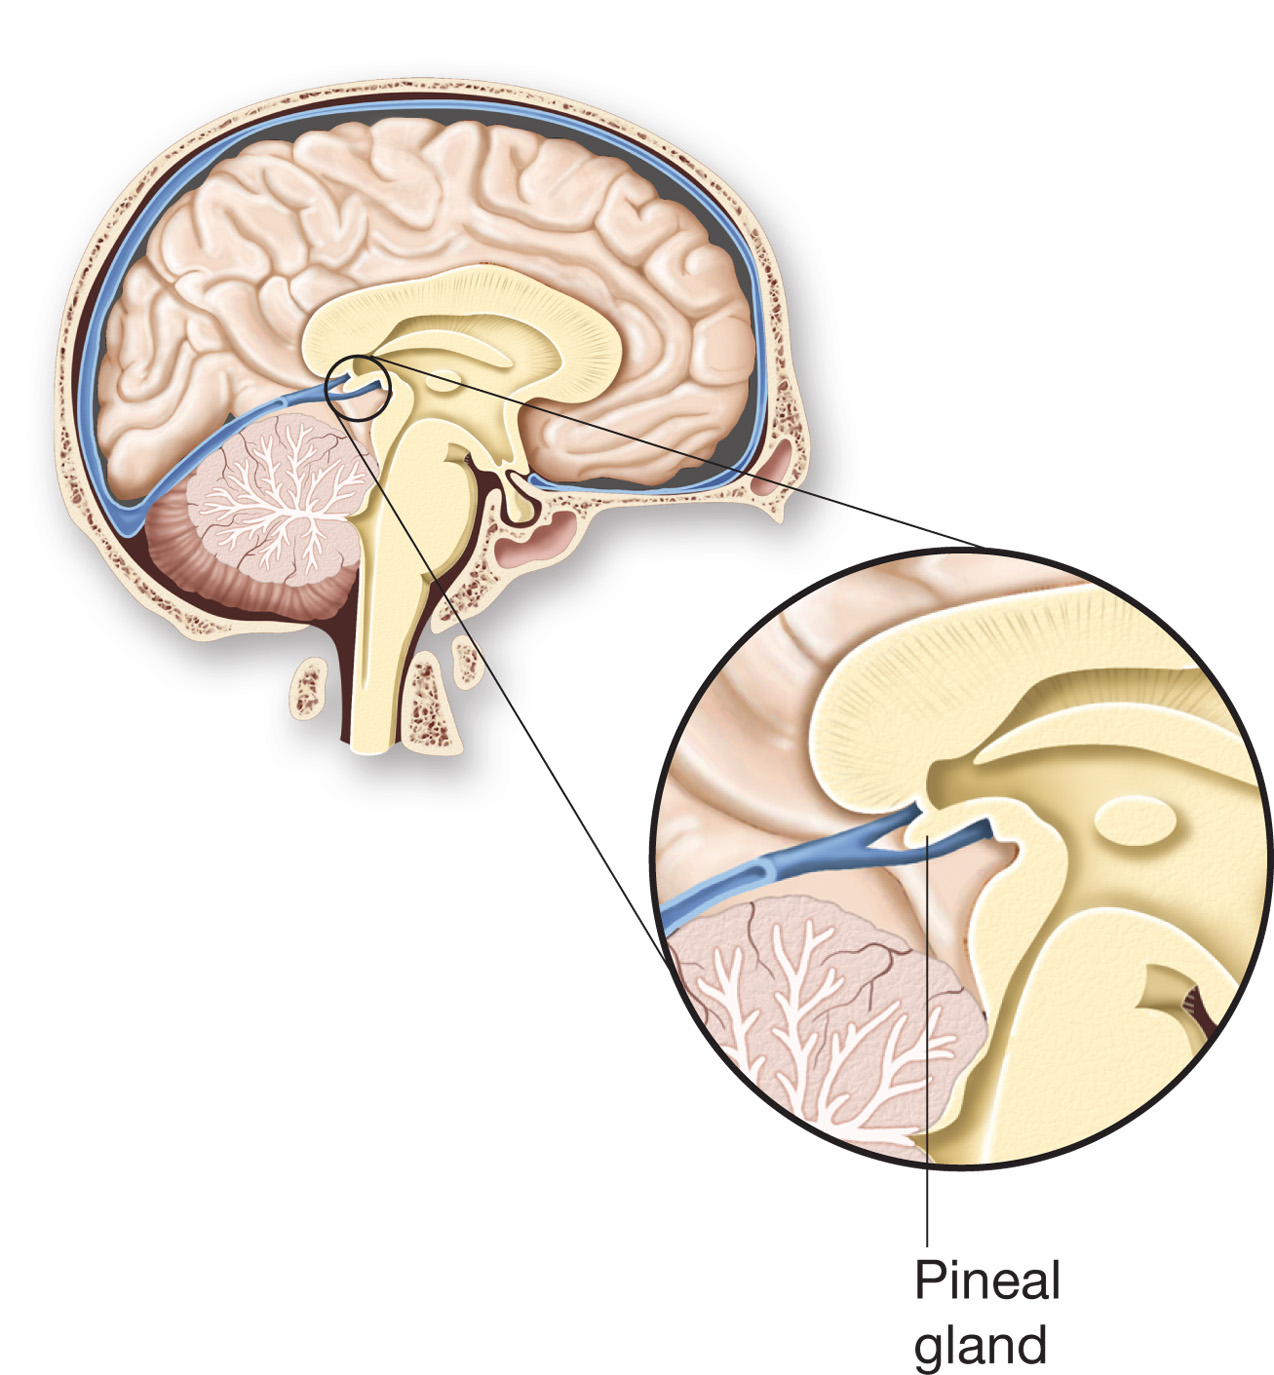 Penial Gland Related Keywords & Suggestions - Penial Gland